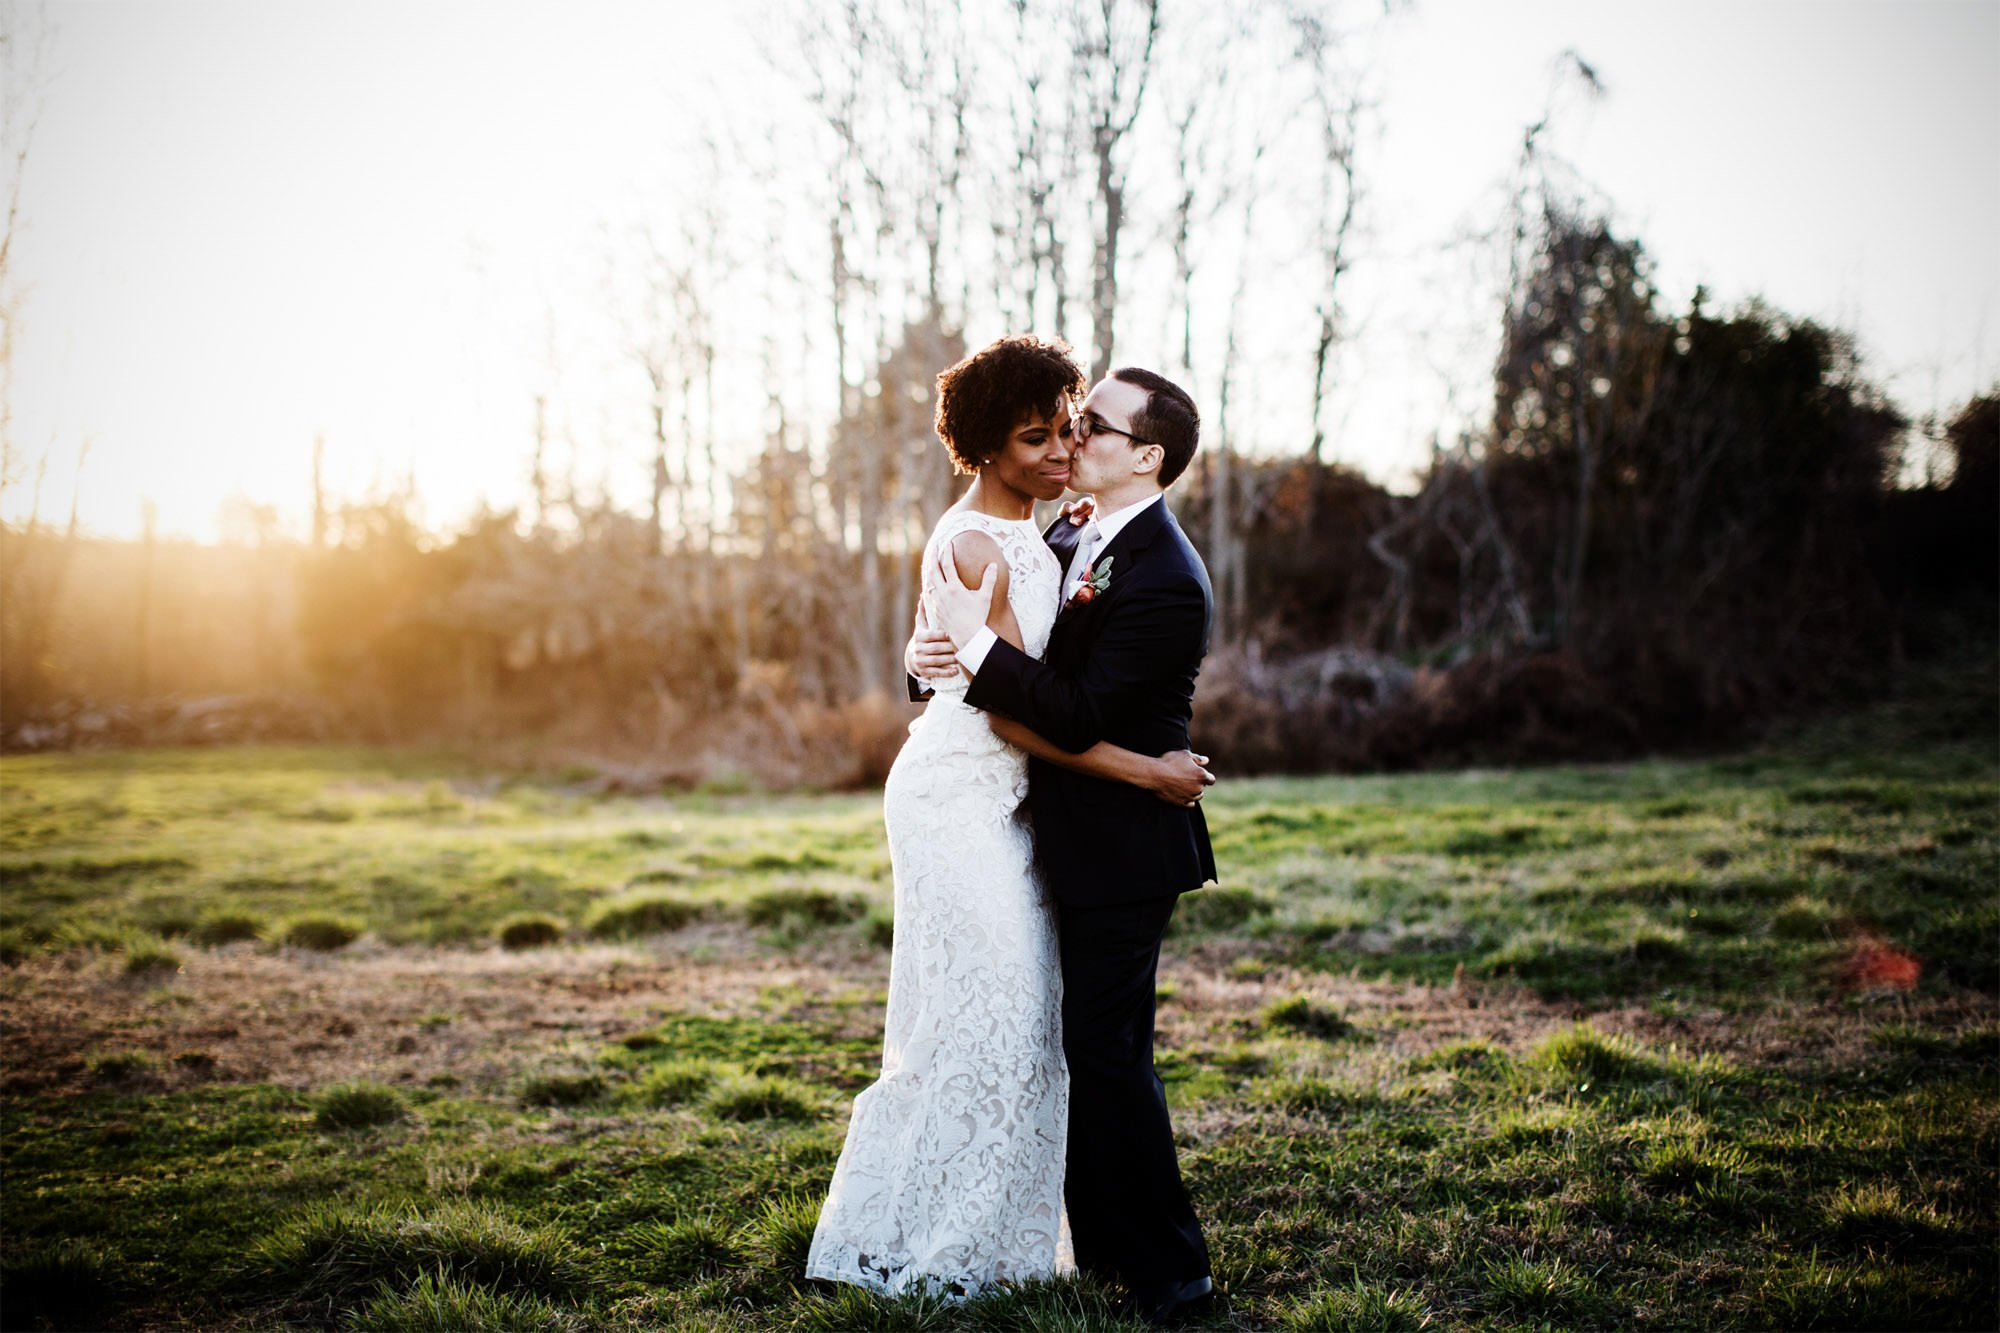 The bride and groom pose for a portrait at sunset during their Riverside on the Potomac wedding.